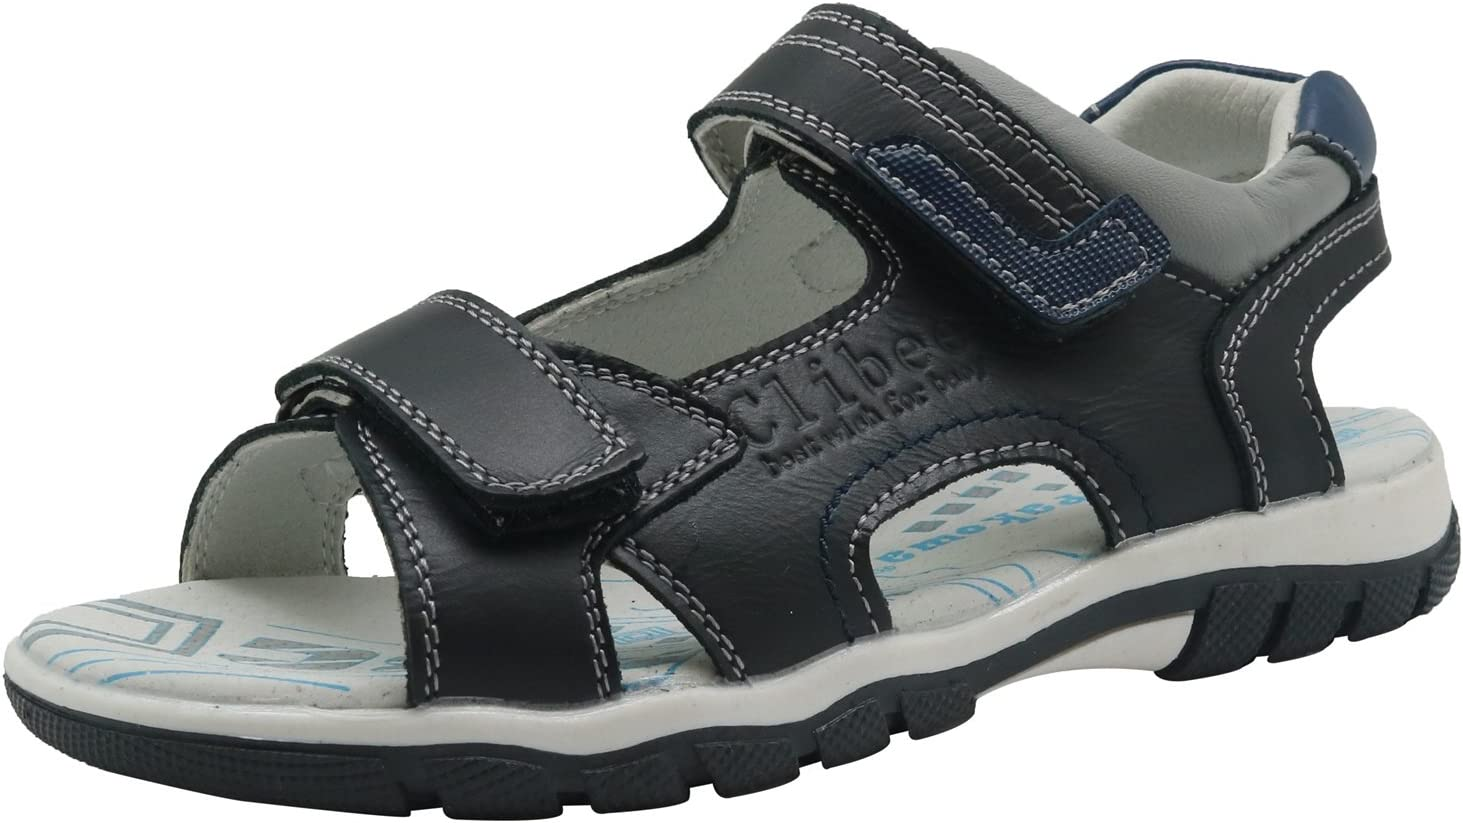 XM-Childrens shoes Non-Slip Boys Double Adjustable Strap Leather Sandals with Arch Support Color : Black335 , Size : 3 M US Little Kid Durable Toddler Kid